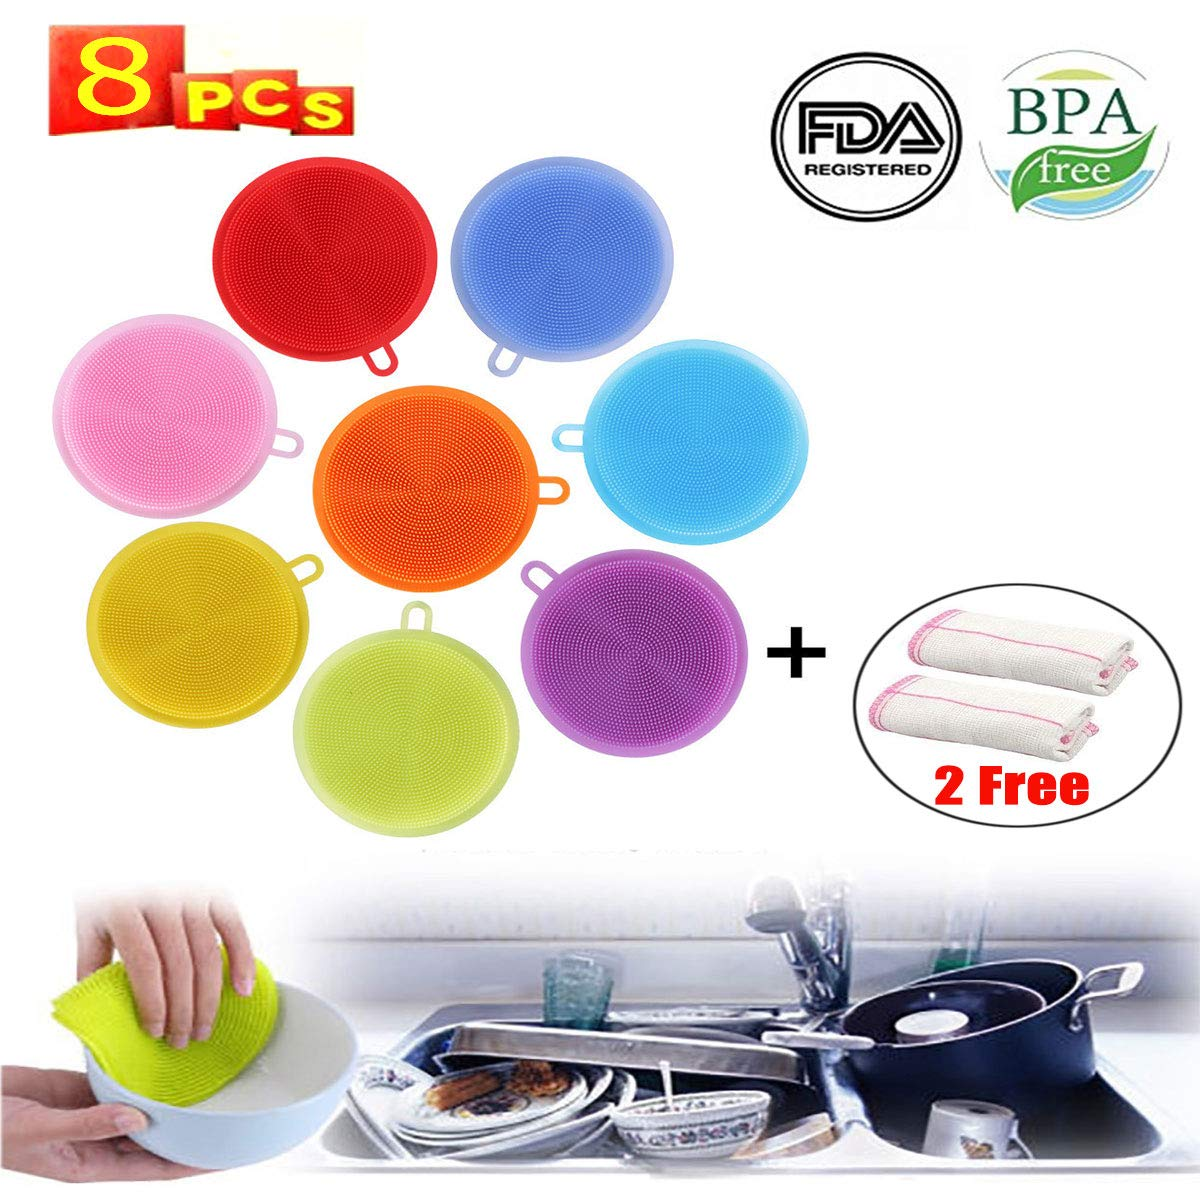 Silicone Sponge and Scrubber Antibacterial Silicone Kitchen Sponge for Dishes /& Cleaning 8 Pack+ 2 Free Non Stick Cleaning Sponge Food-Grade Better Sponge Dishwasher